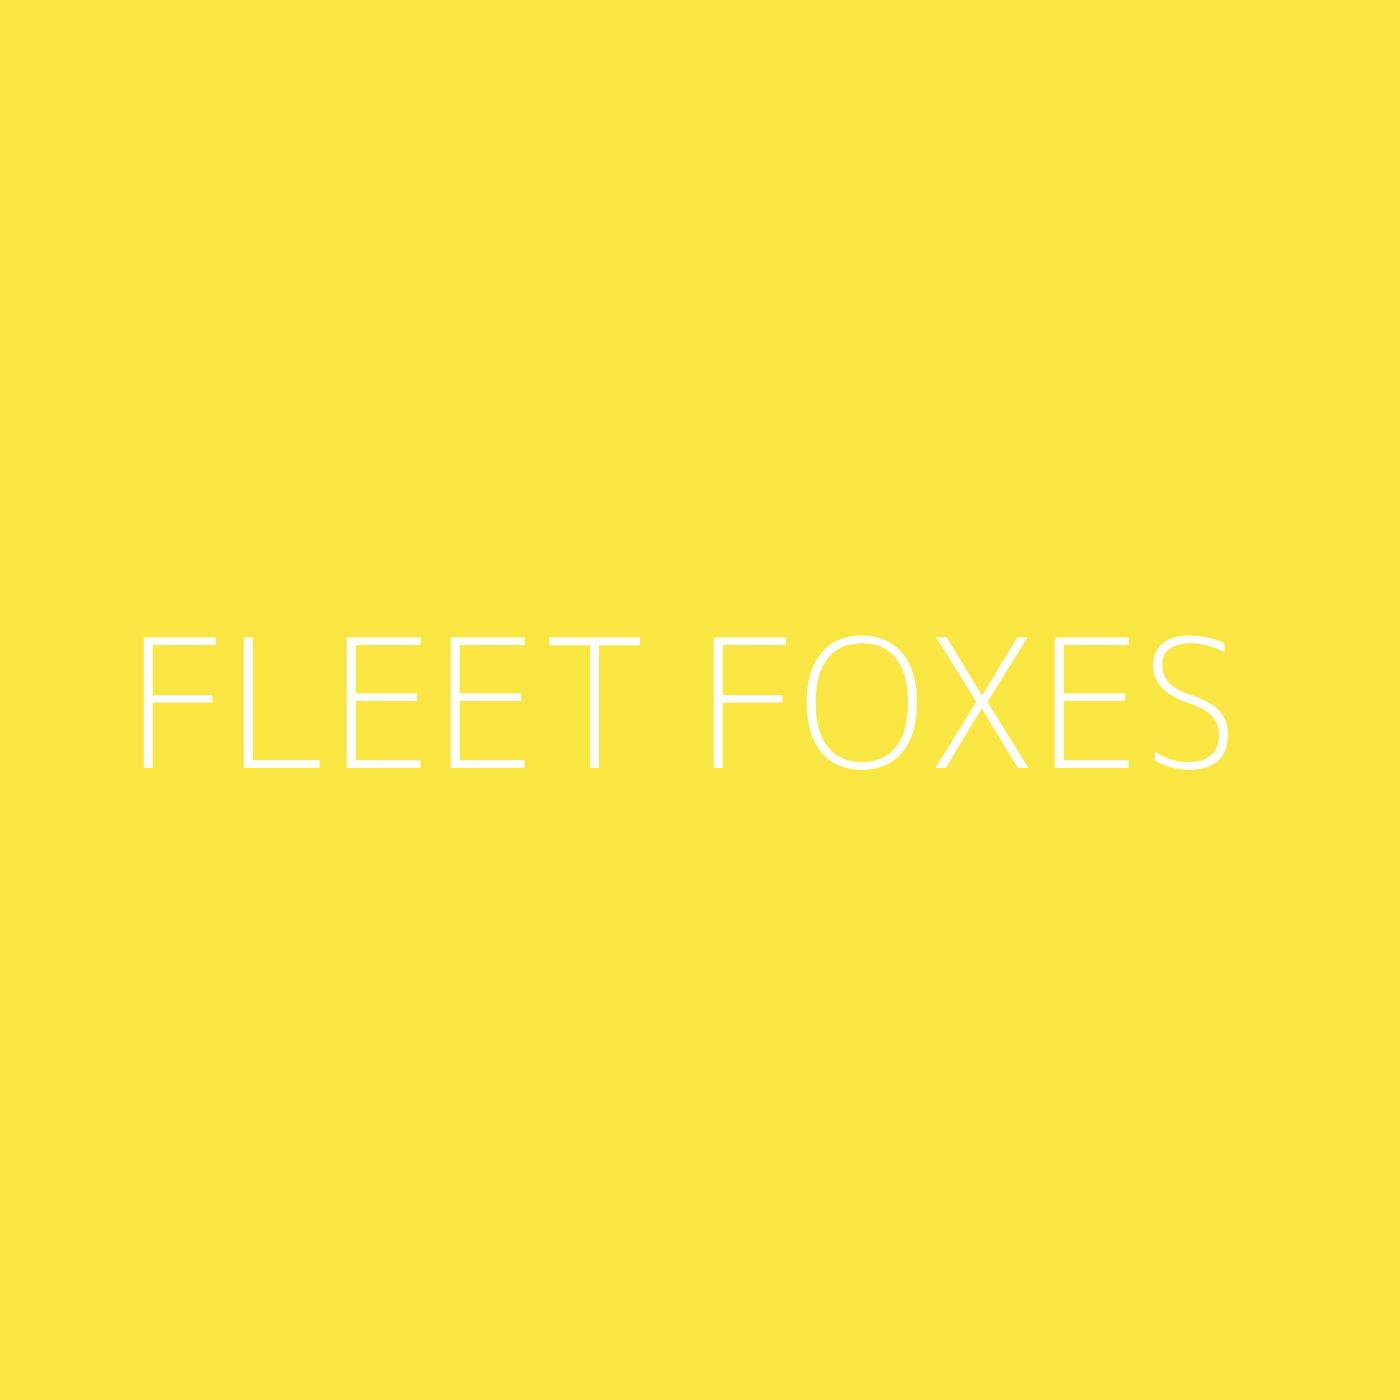 Fleet Foxes Playlist Artwork